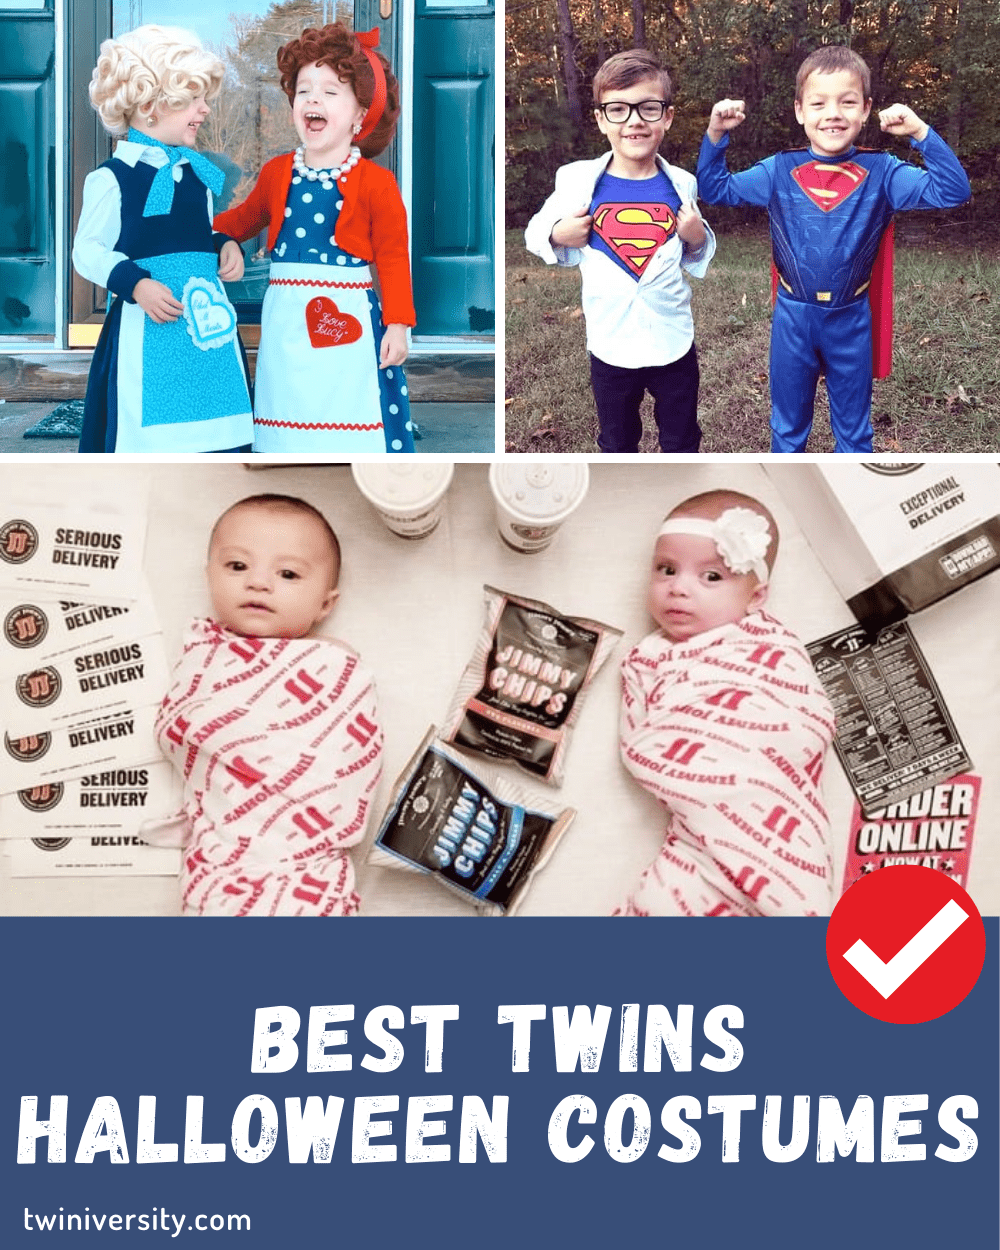 Every year, there's that one superhero film, hit tv show or viral meme that inspires everyone's costume ideas when halloween rolls around. Twin Halloween Costumes That Your Kids Will Love